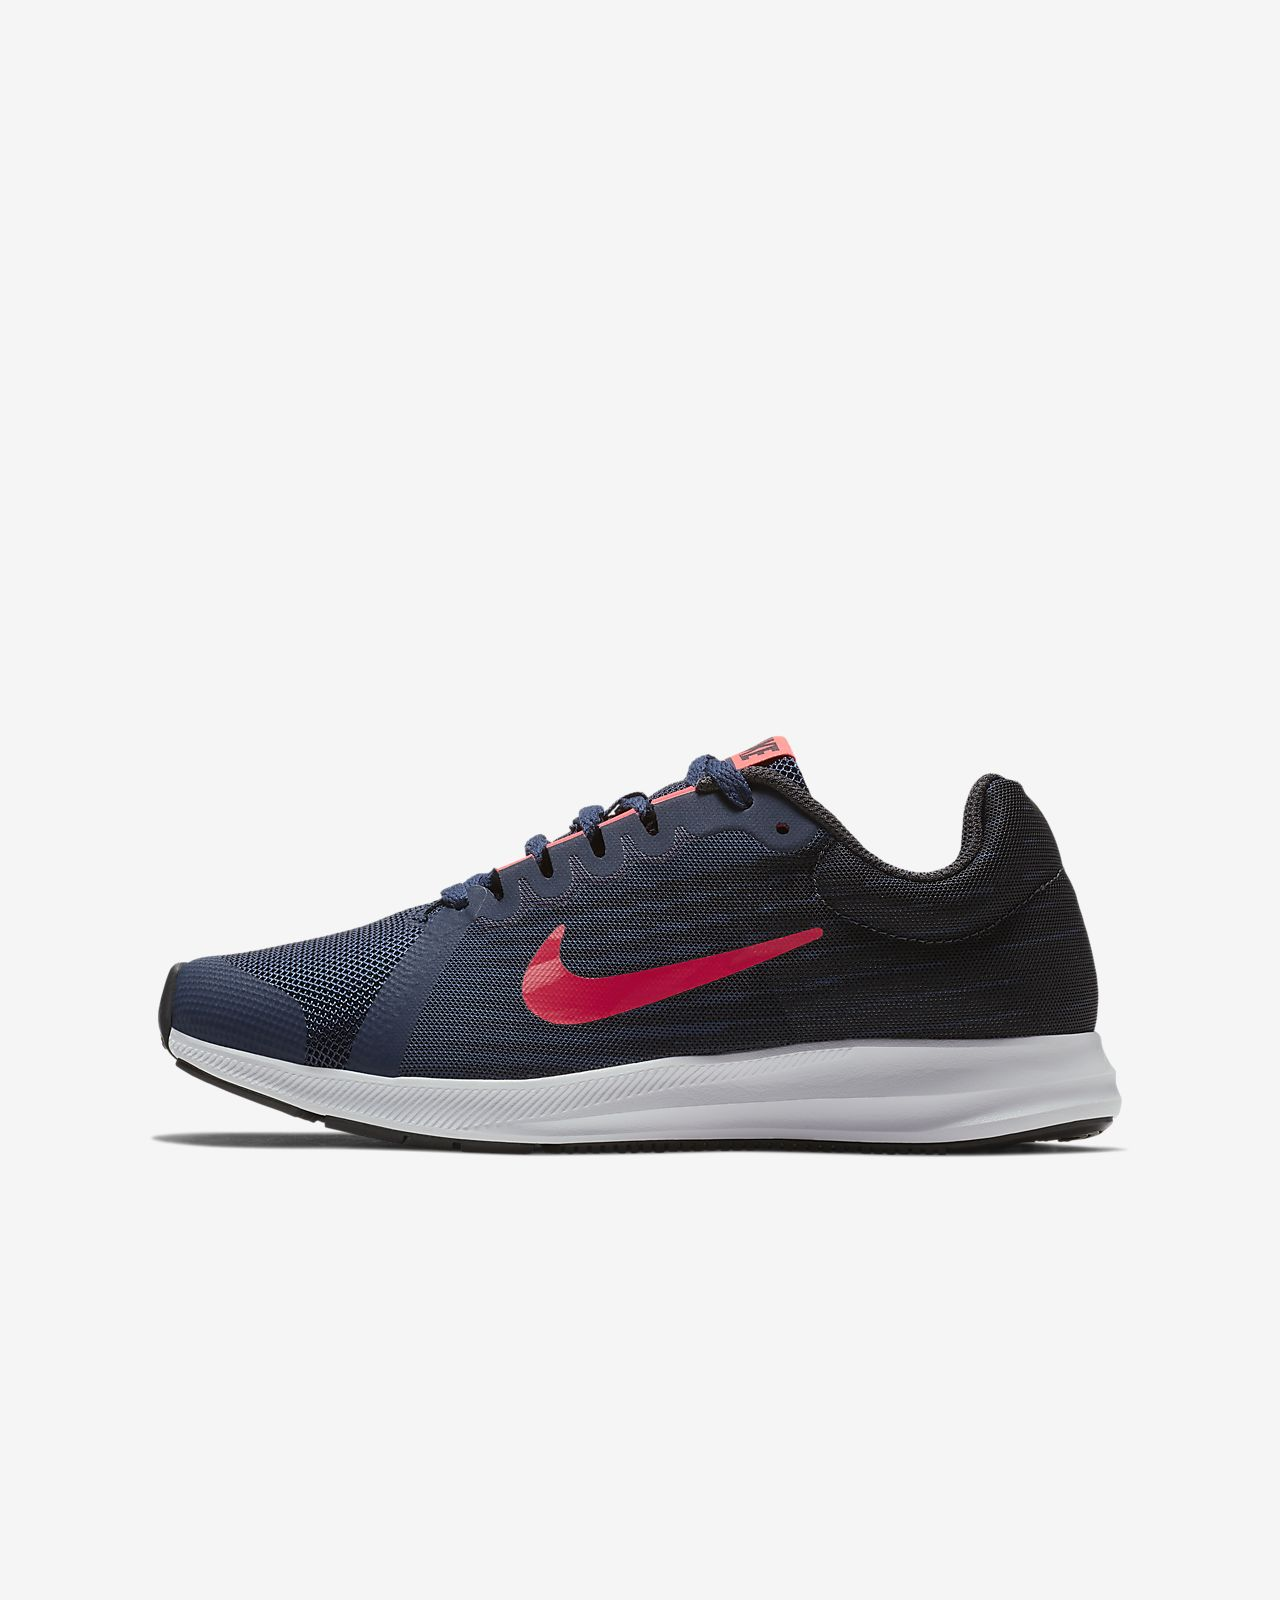 Nike Downshifter 8 Older Kids' Running Shoe